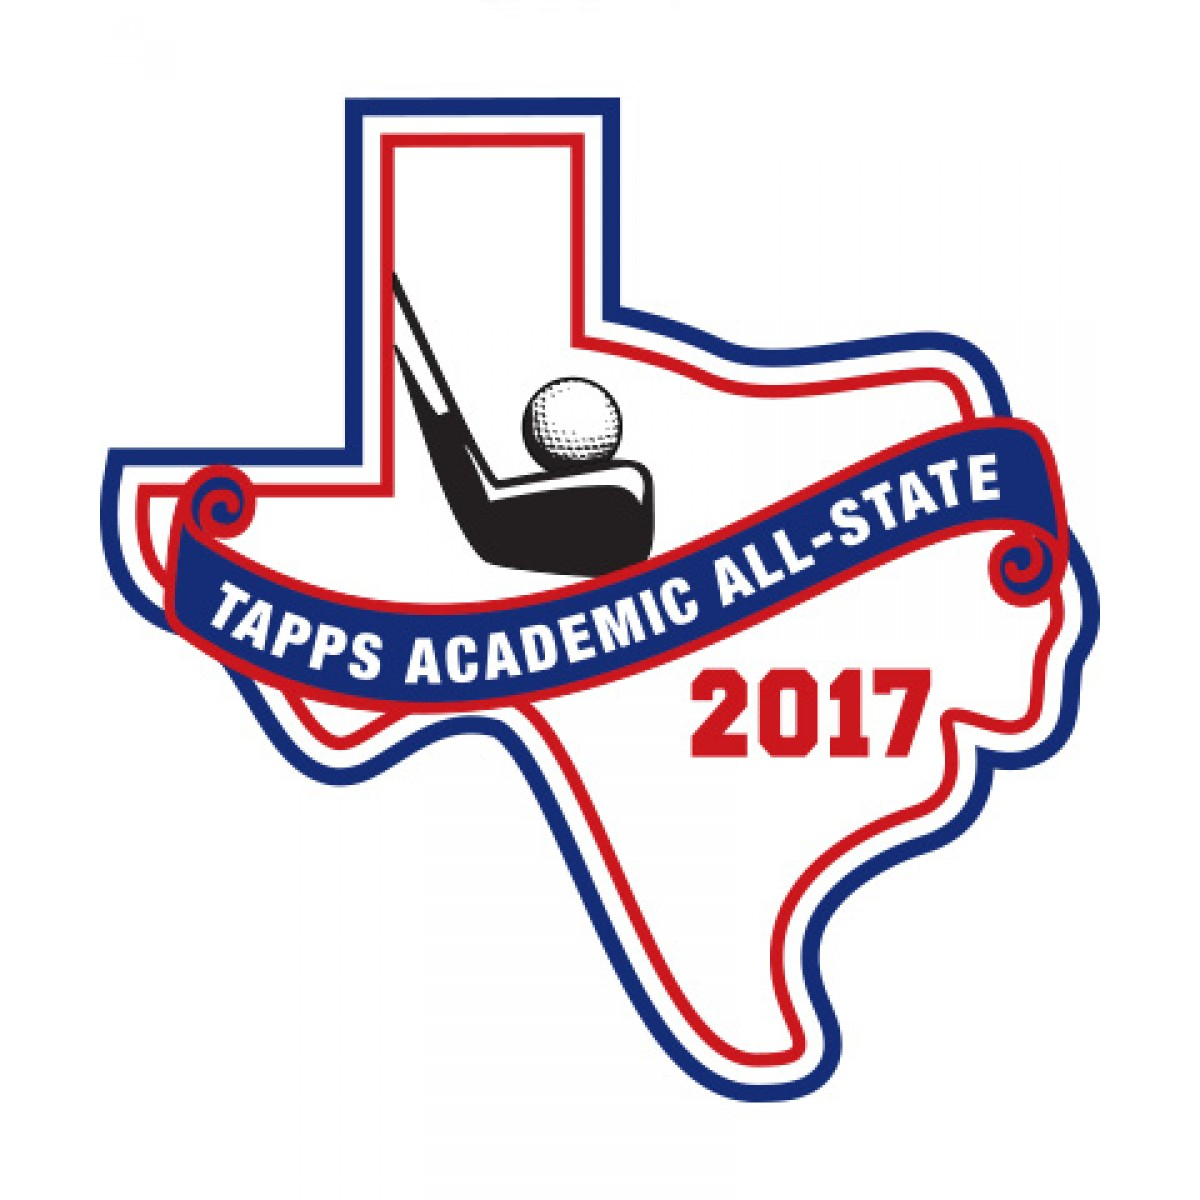 Felt 2017 TAPPS Academic All-State Golf Patch